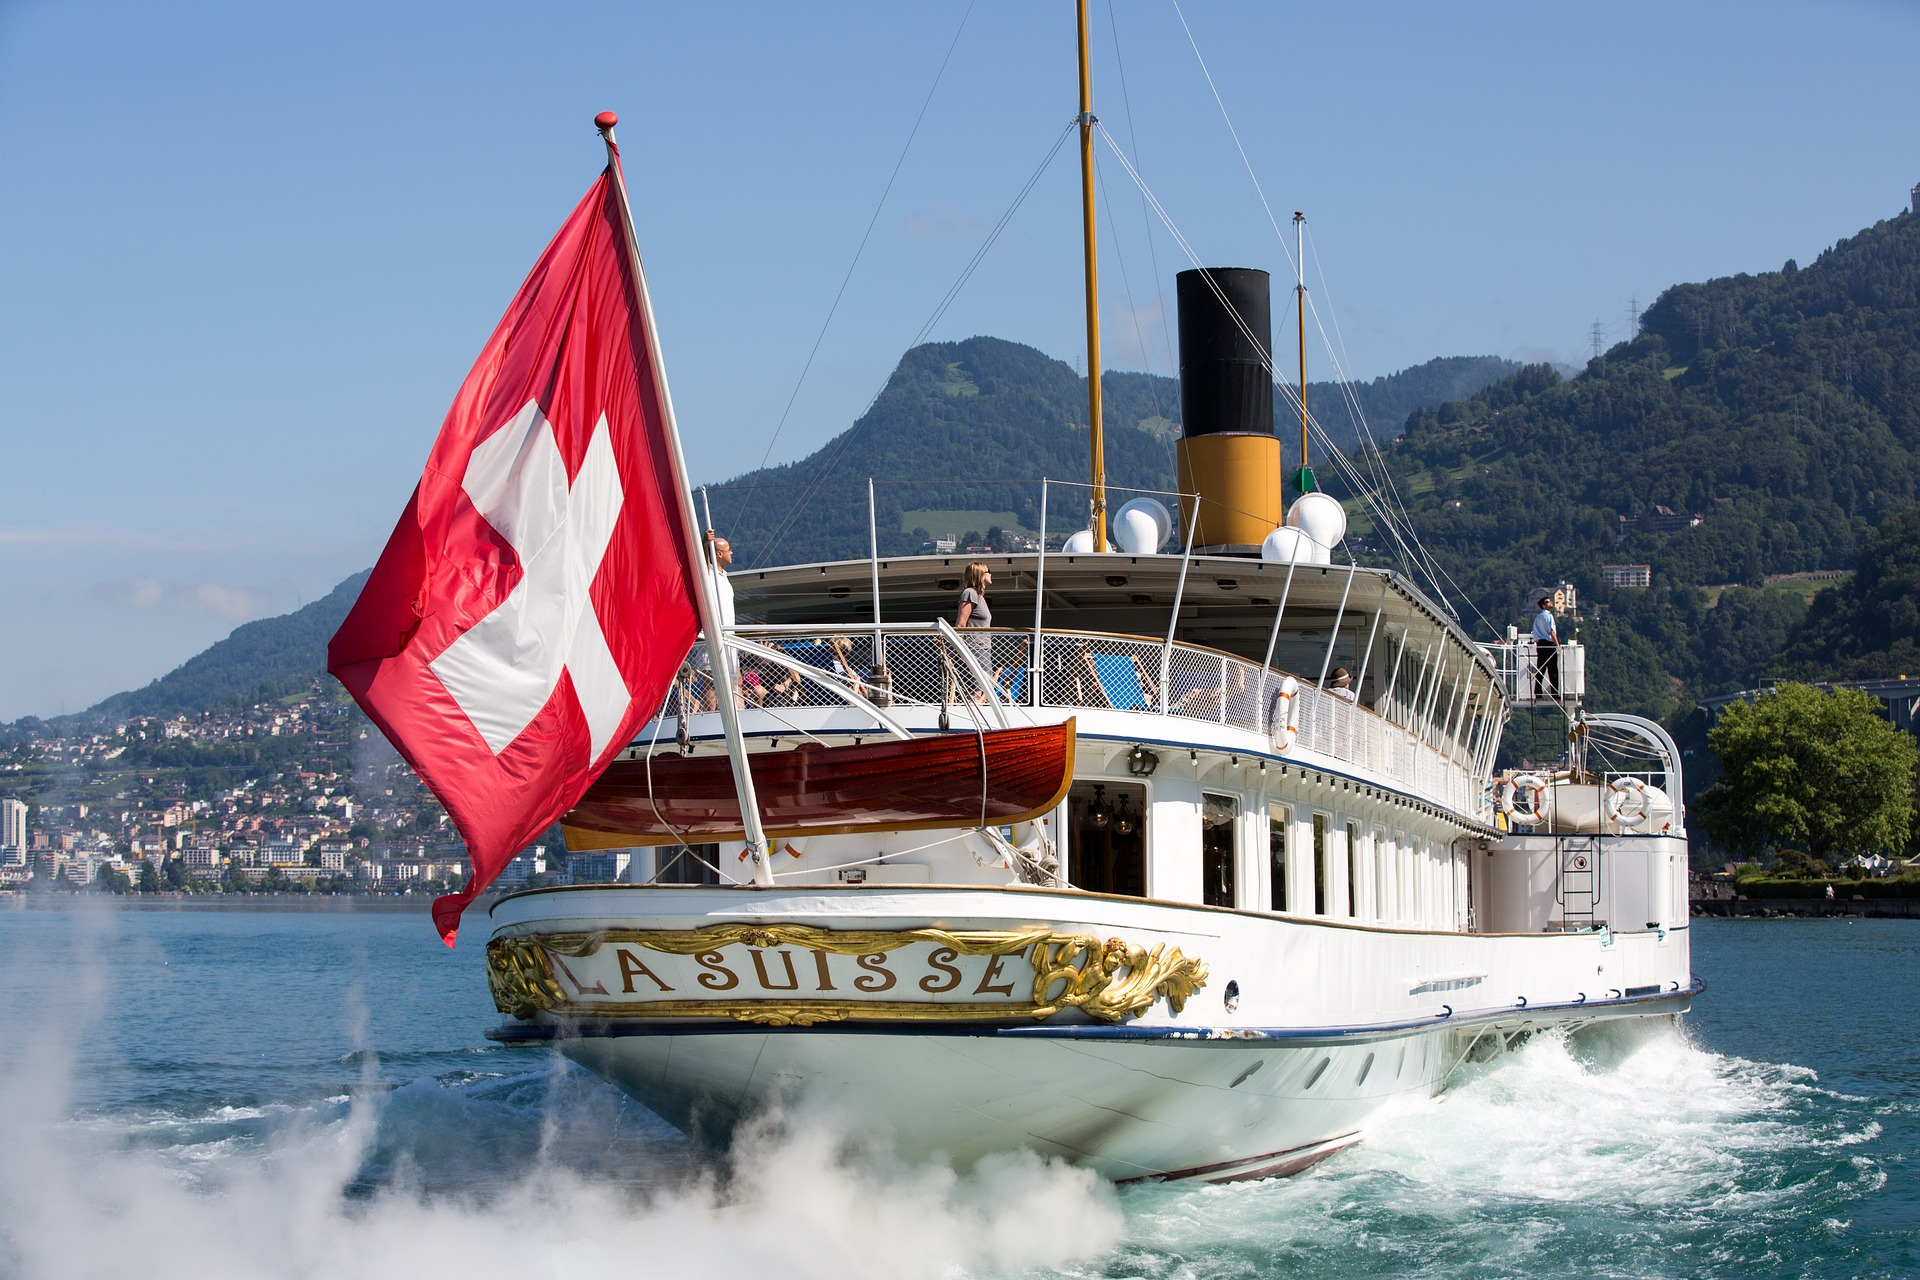 Boat with the Switzerland flag